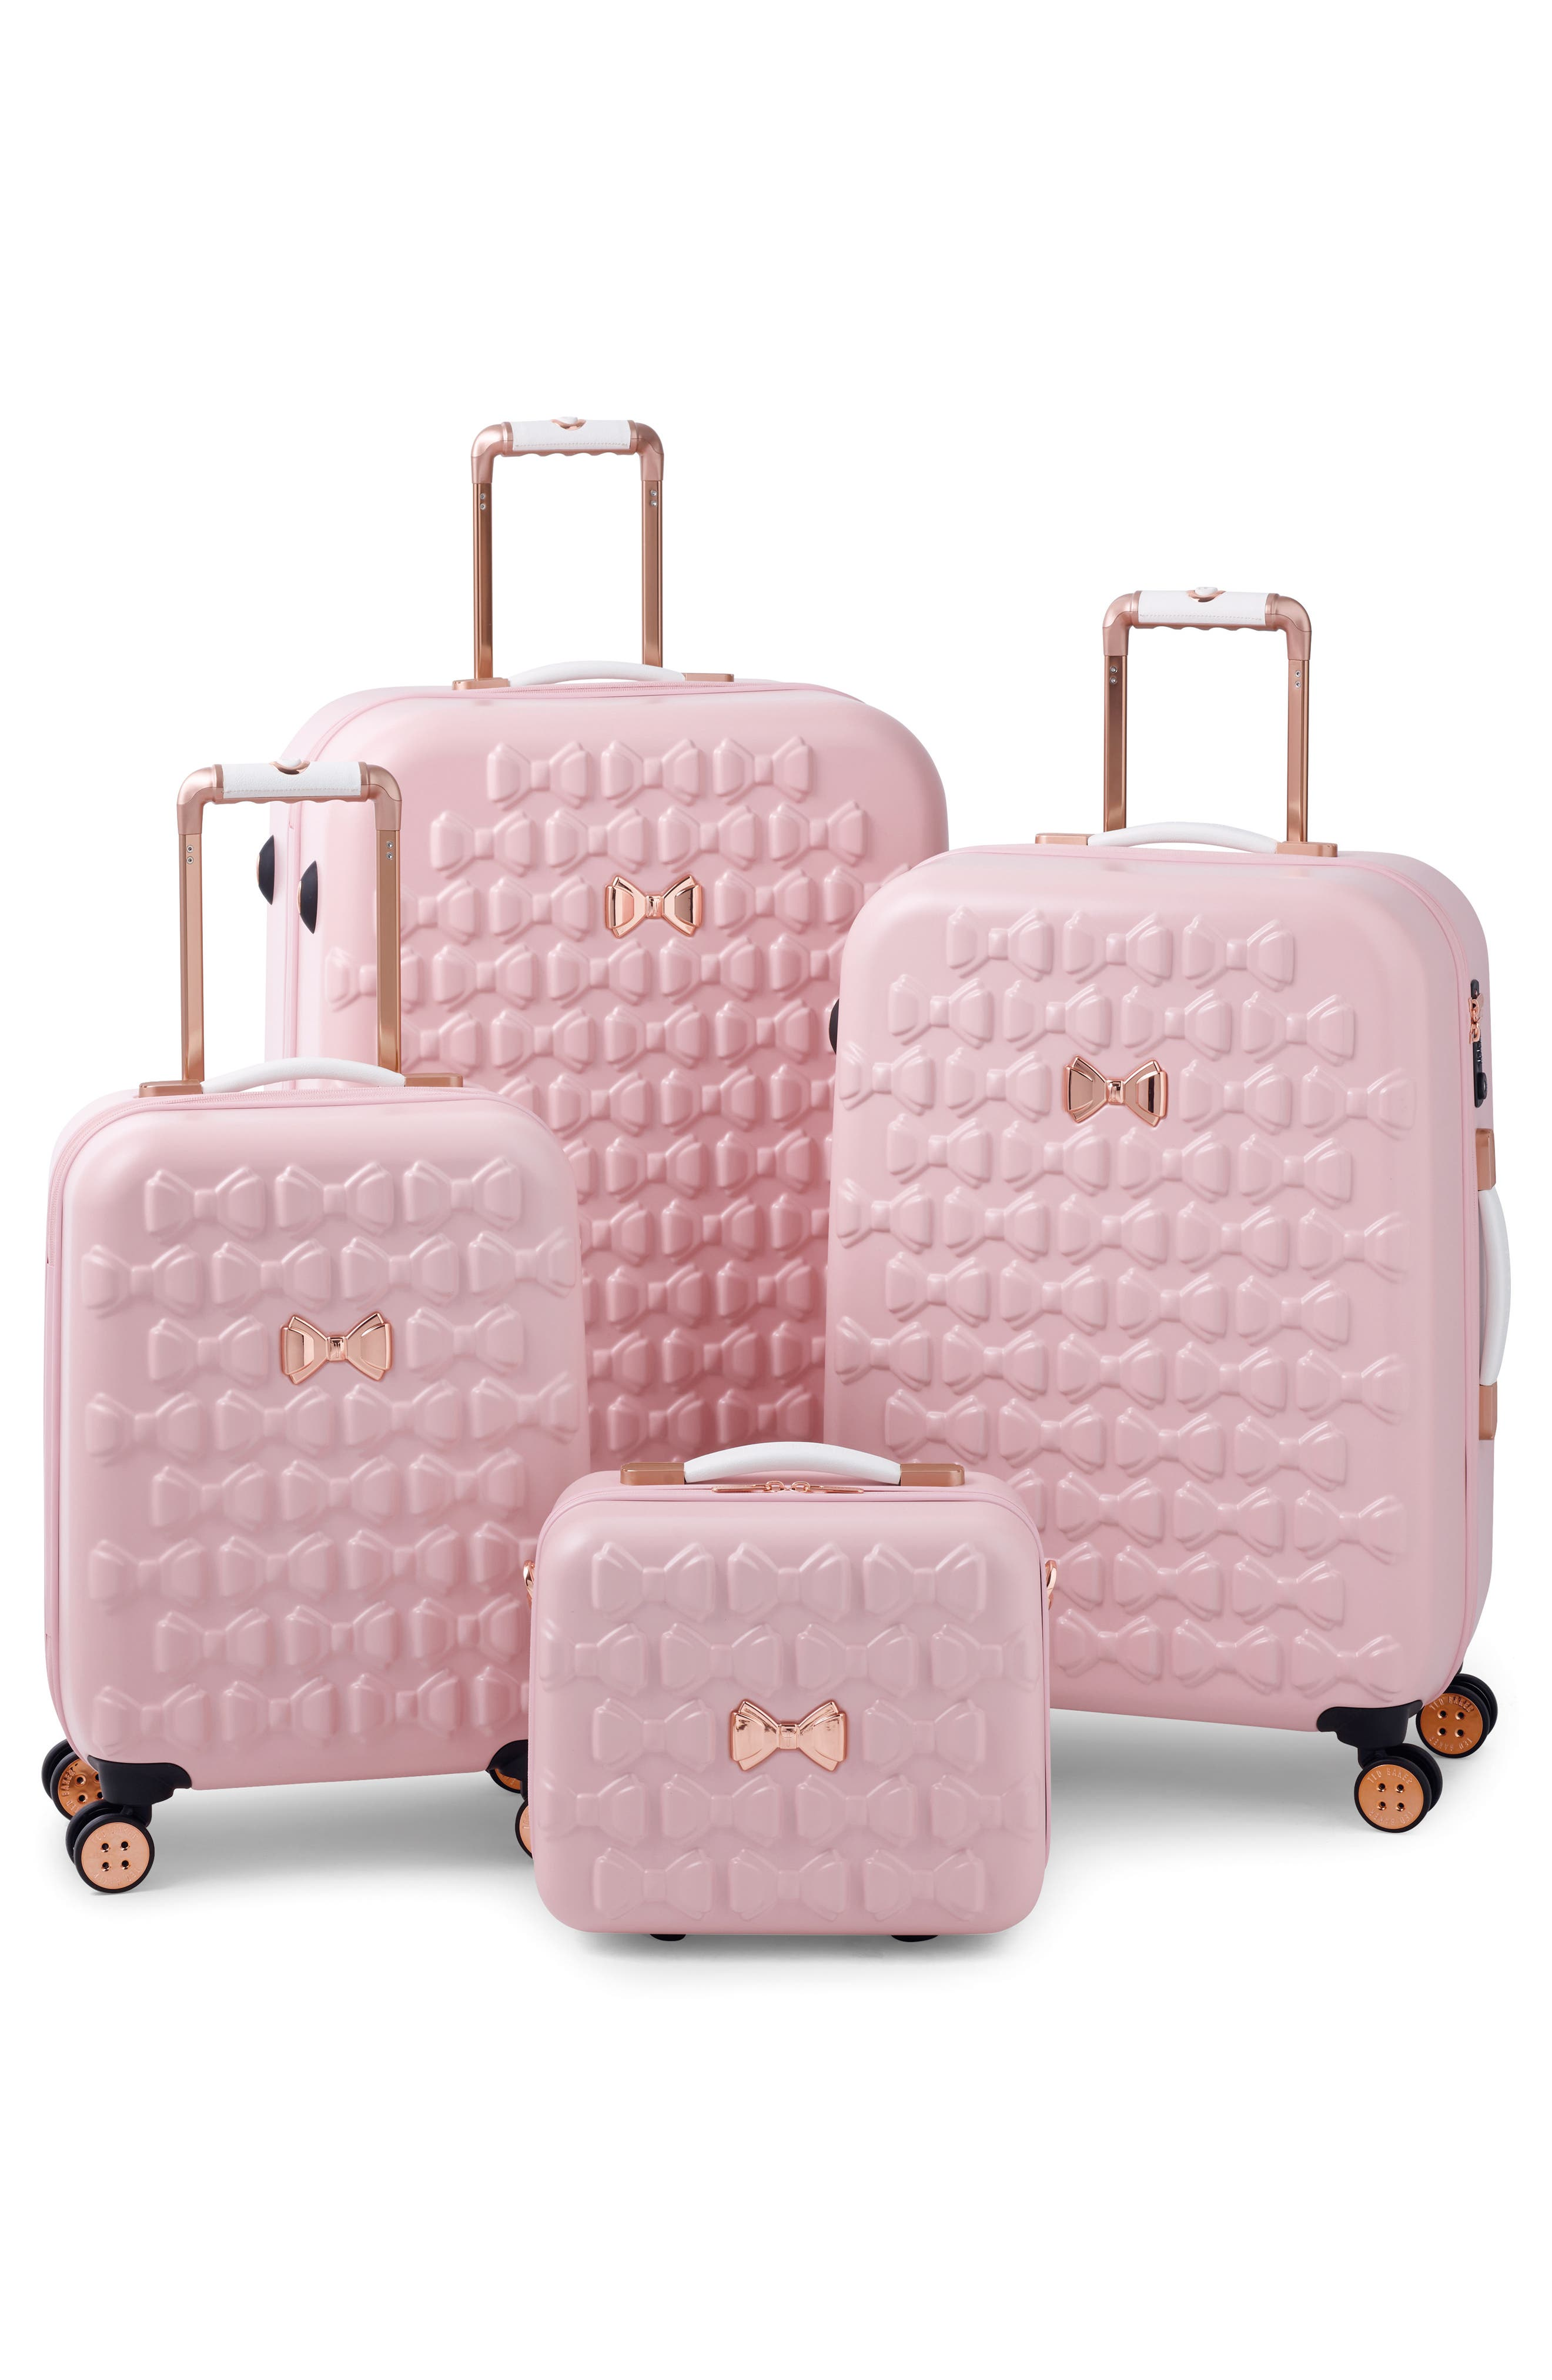 Medium Beau Bow Embossed Four-Wheel 27-Inch Trolley Suitcase,                             Alternate thumbnail 8, color,                             Pink